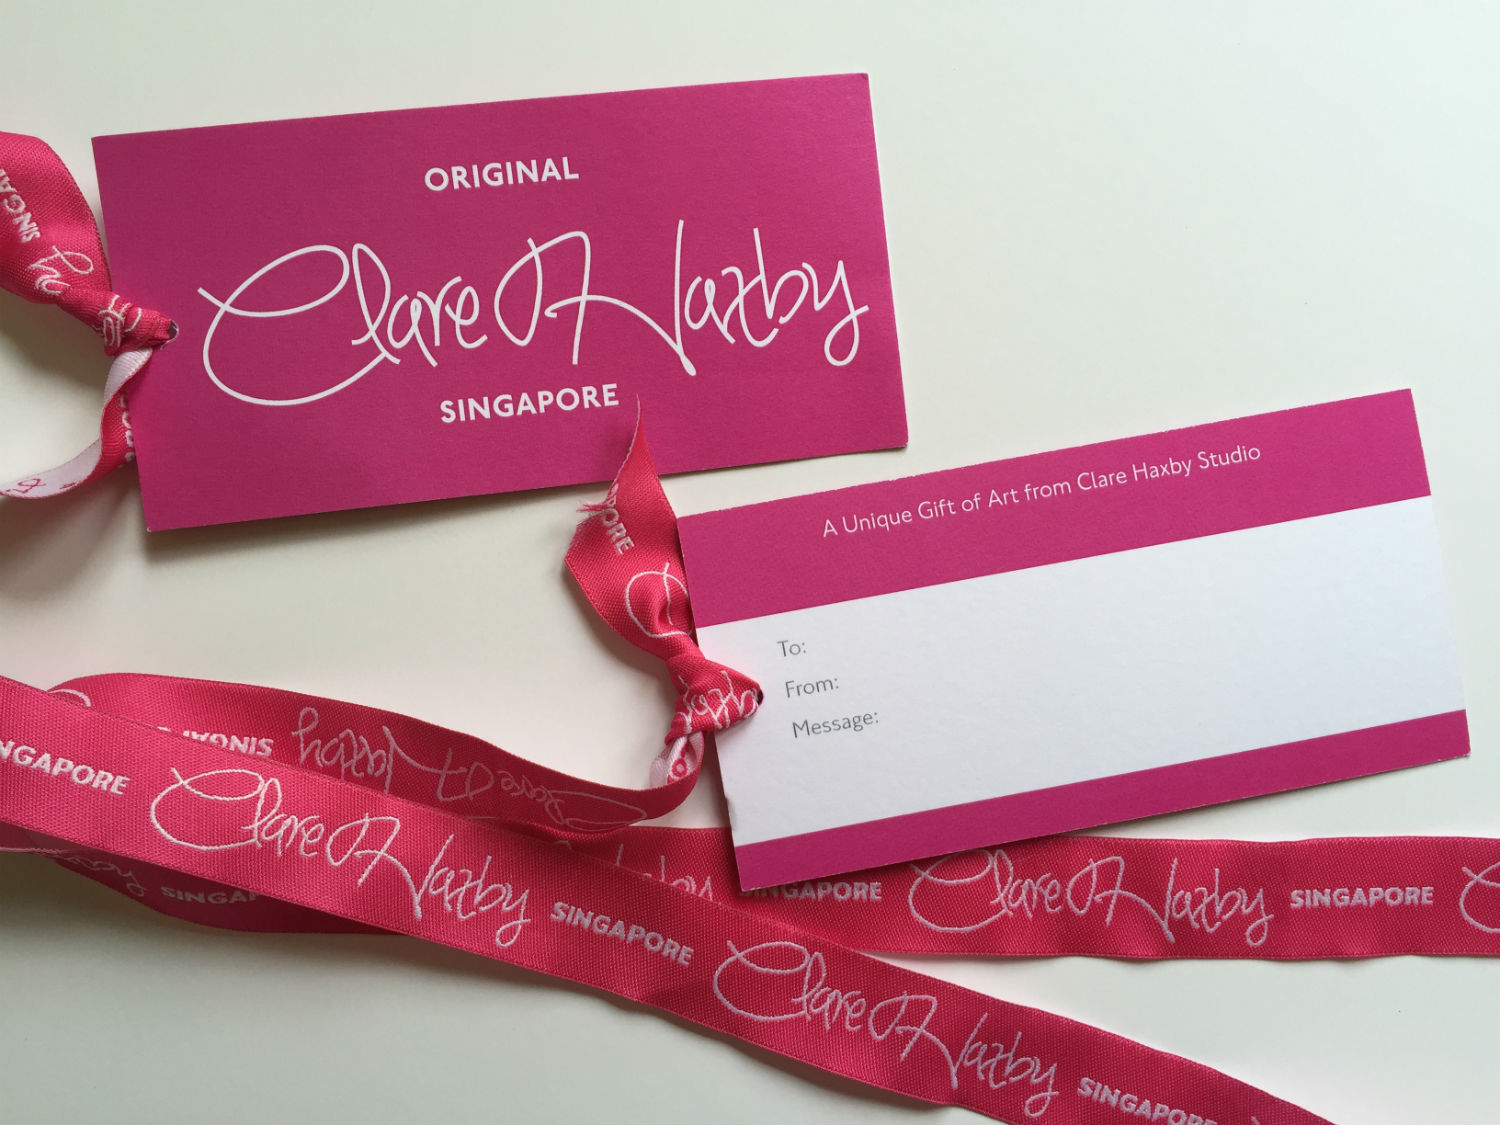 Clare-haxby-packaging-ribbon-tag